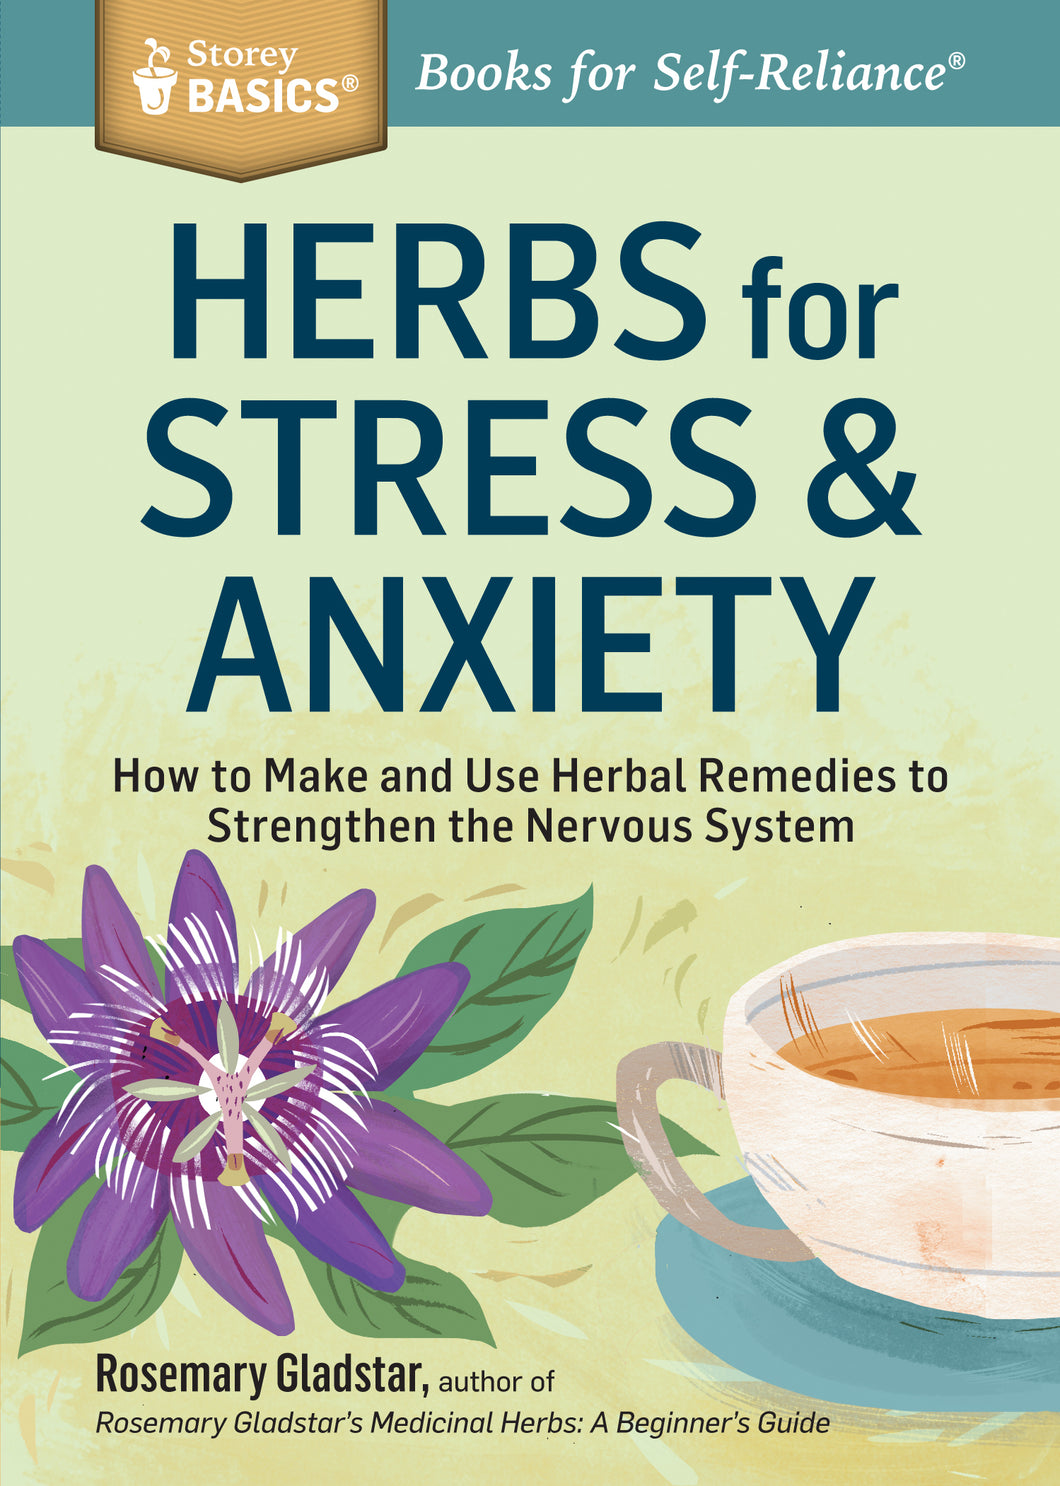 Herbs for Stress & Anxiety - Carolina Readiness, dooms day prepper supplies online